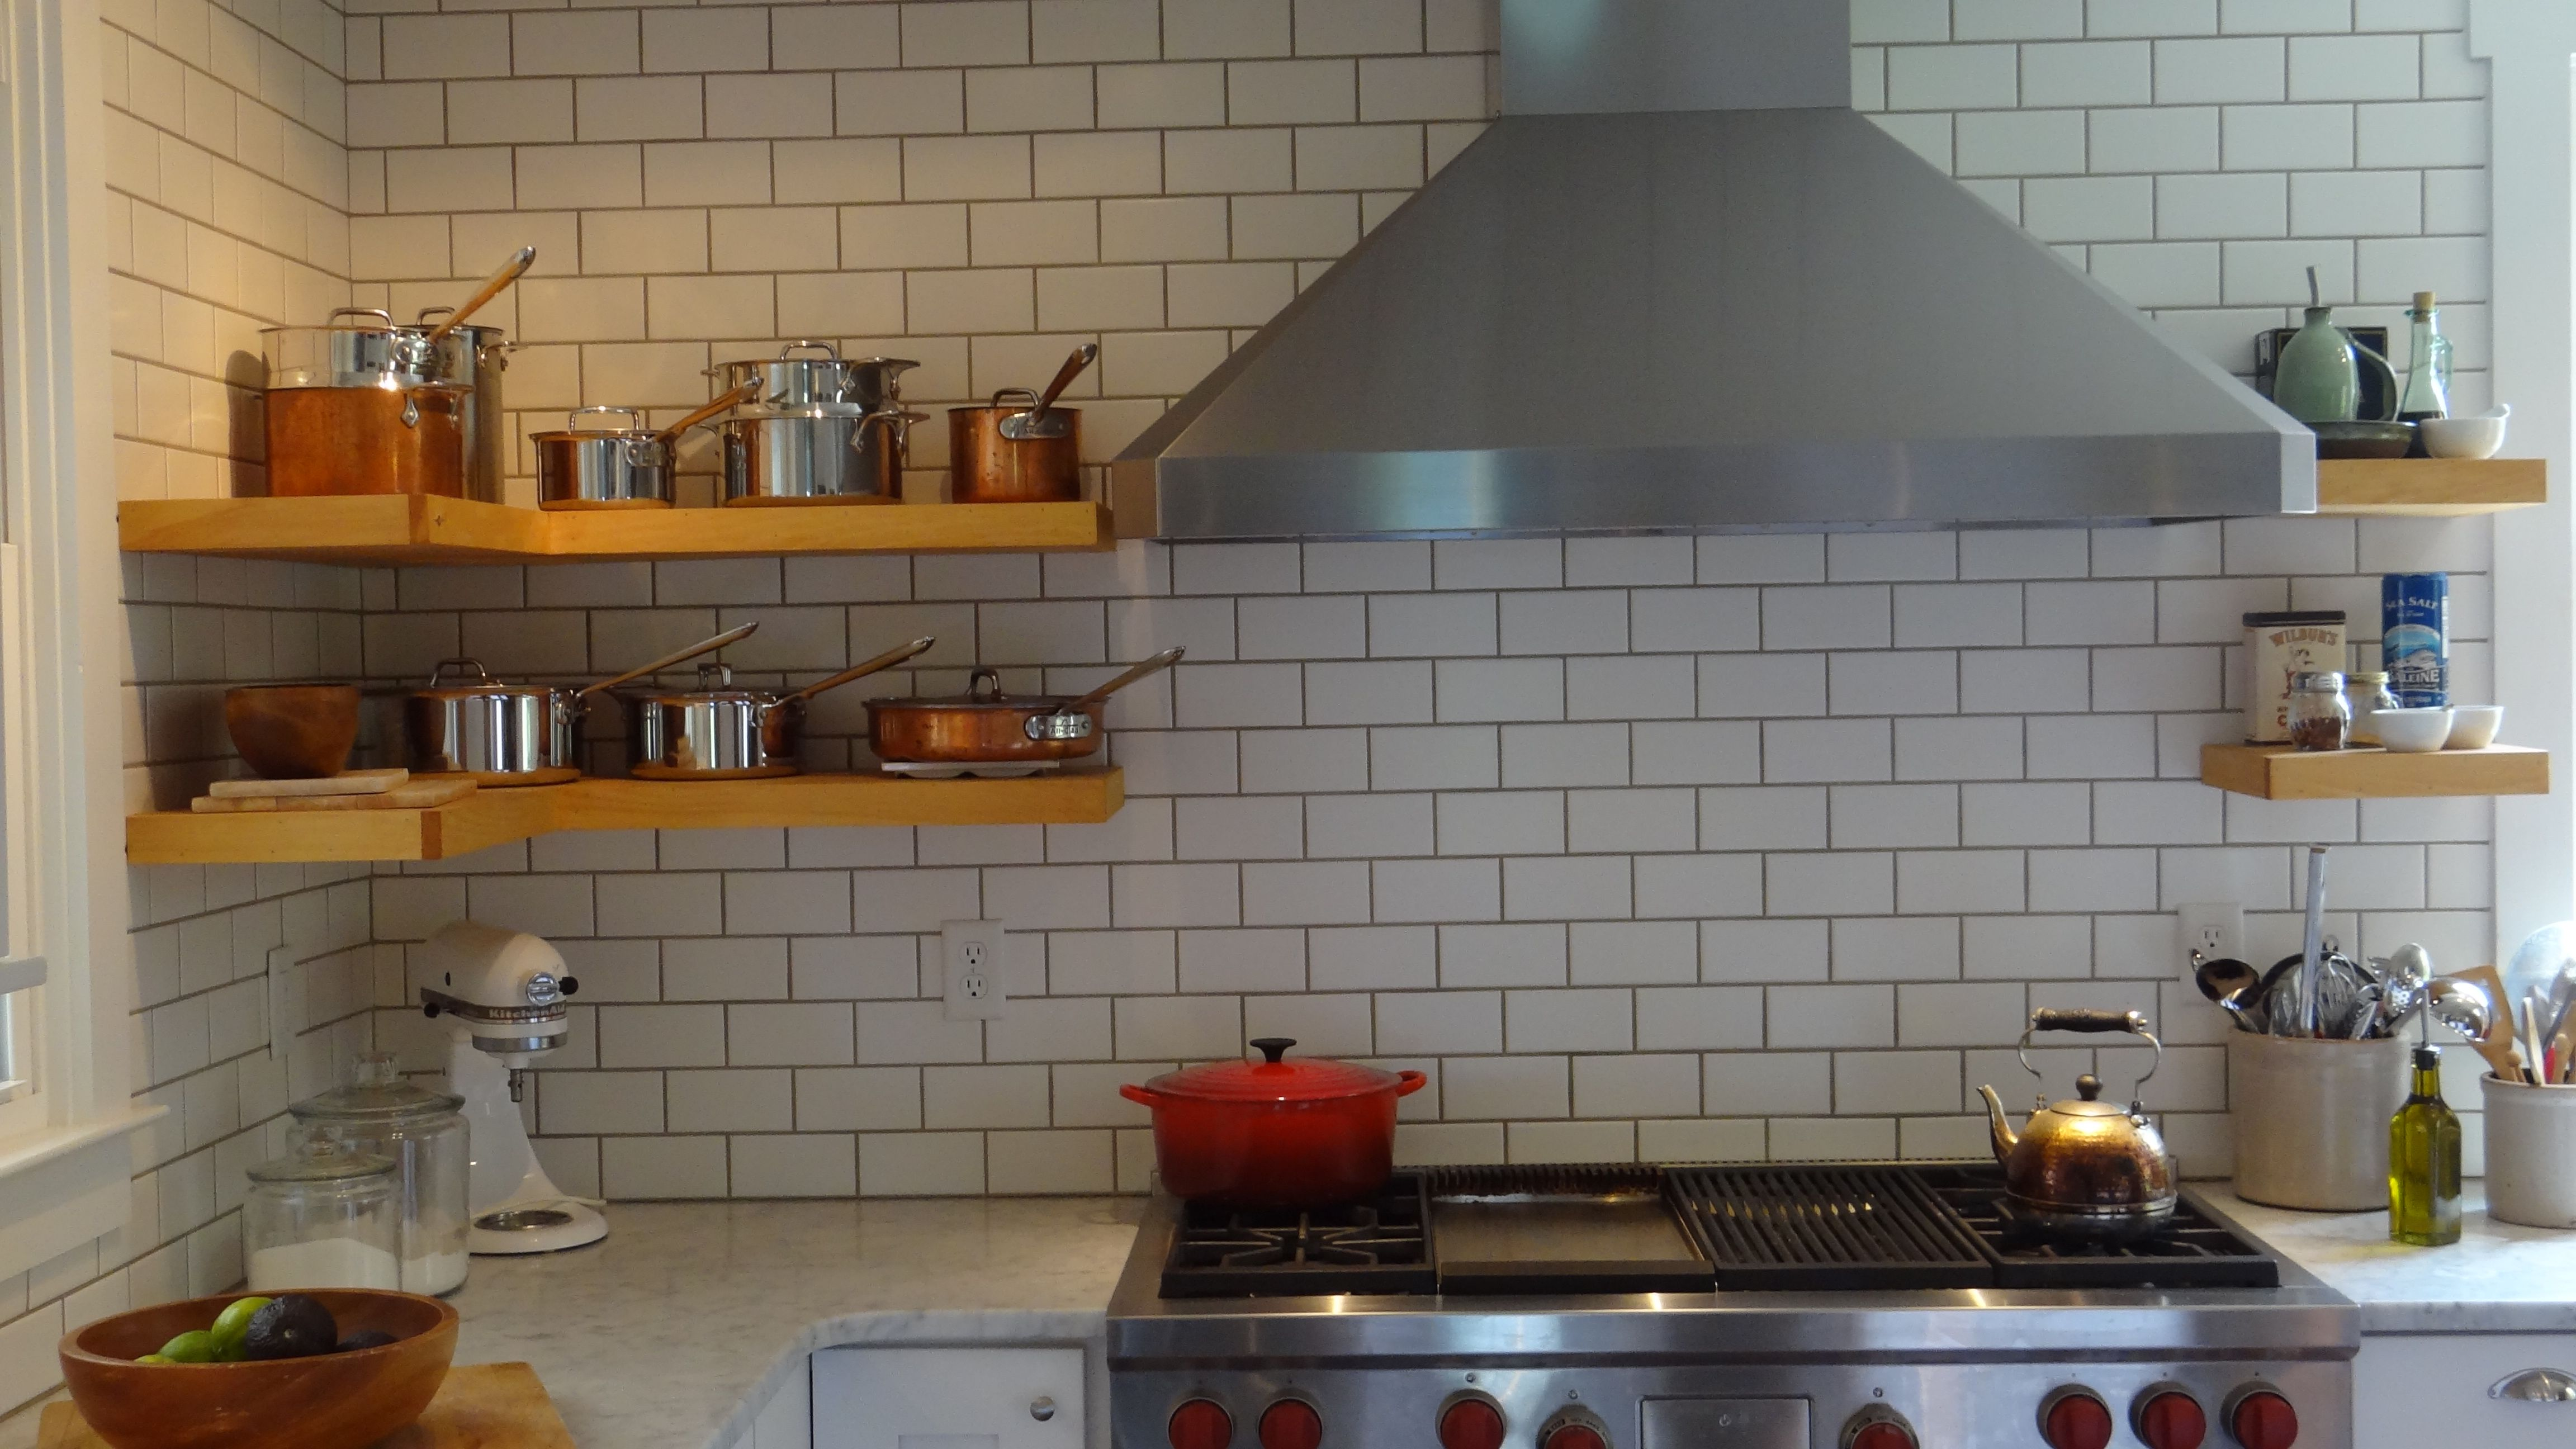 Open pine shelving and white subway tile the full height of the wall.